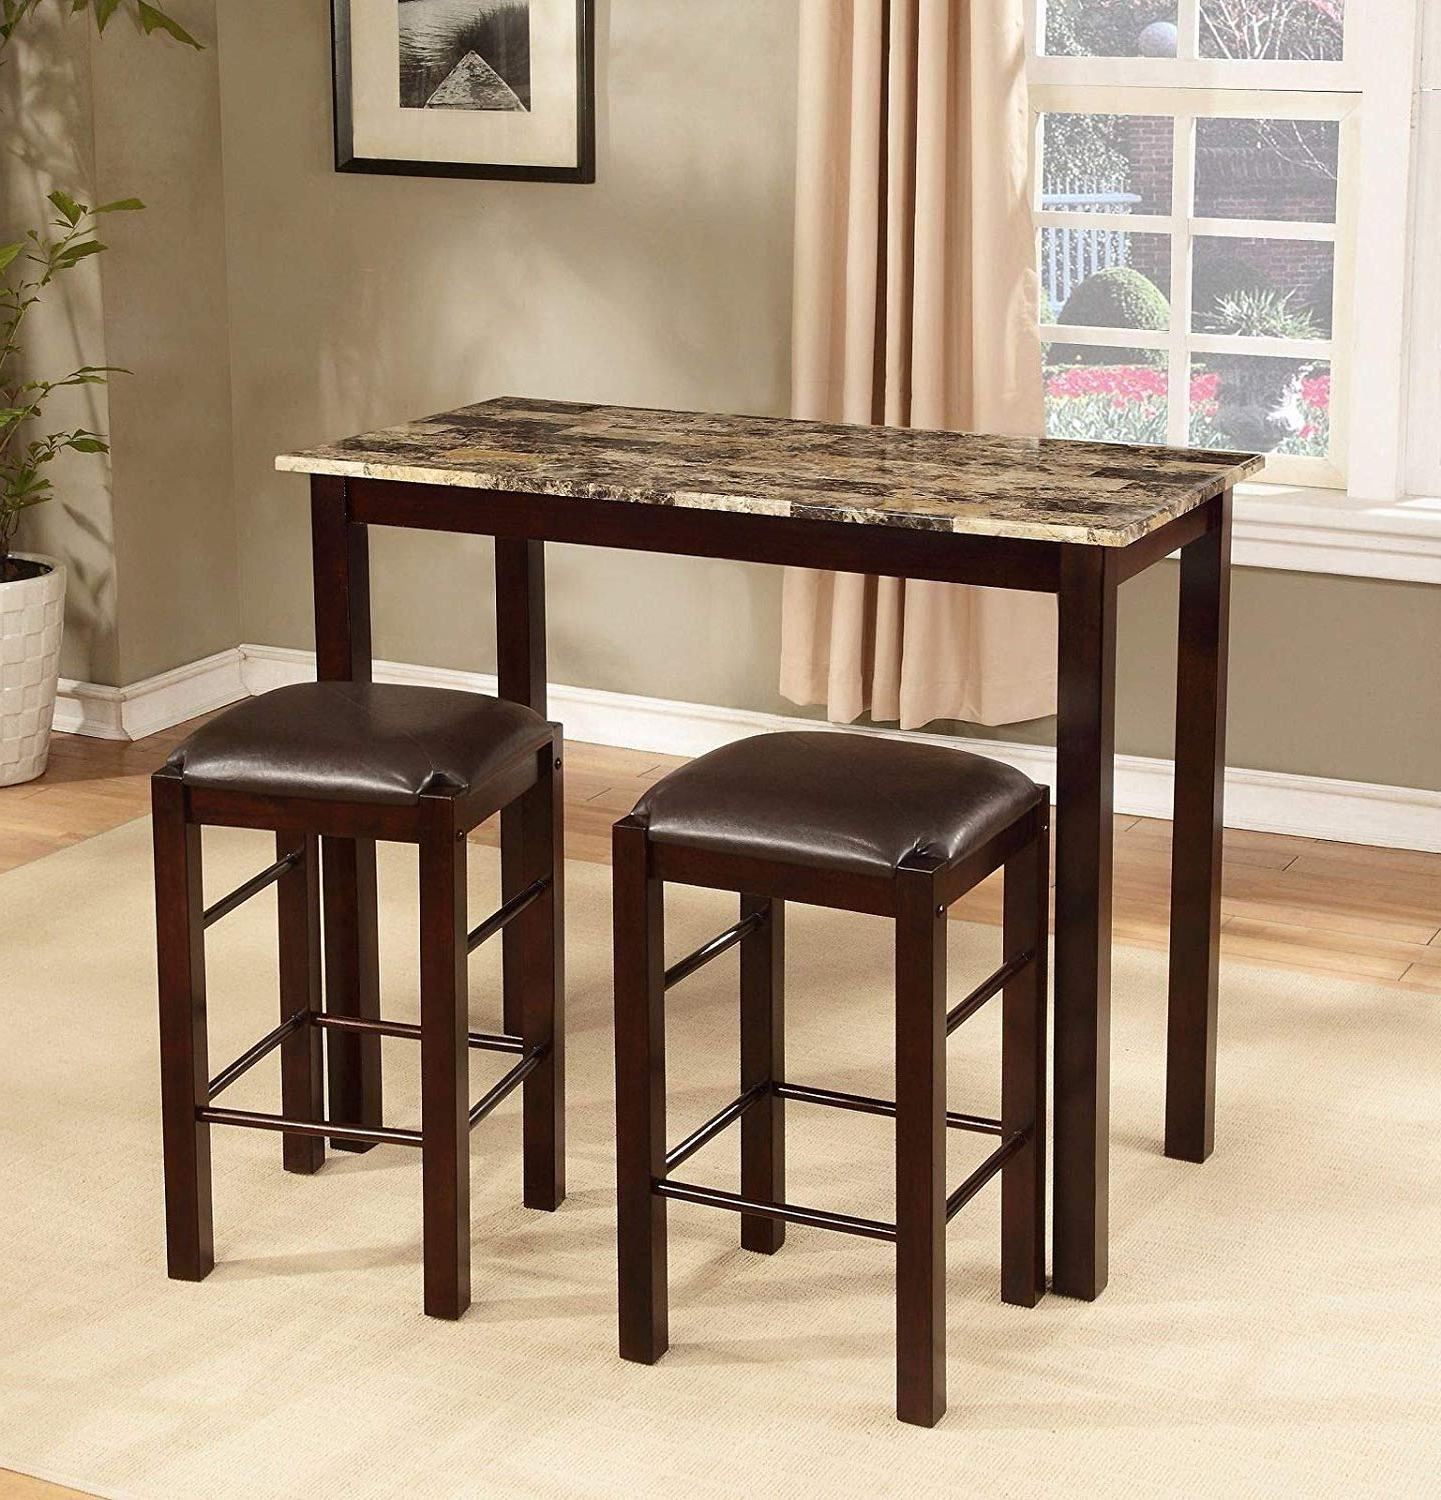 Penelope 3 Piece Counter Height Wood Dining Sets Regarding Popular Amazon – Winston Porter Penelope 3 Piece Counter Height Wood (View 2 of 25)